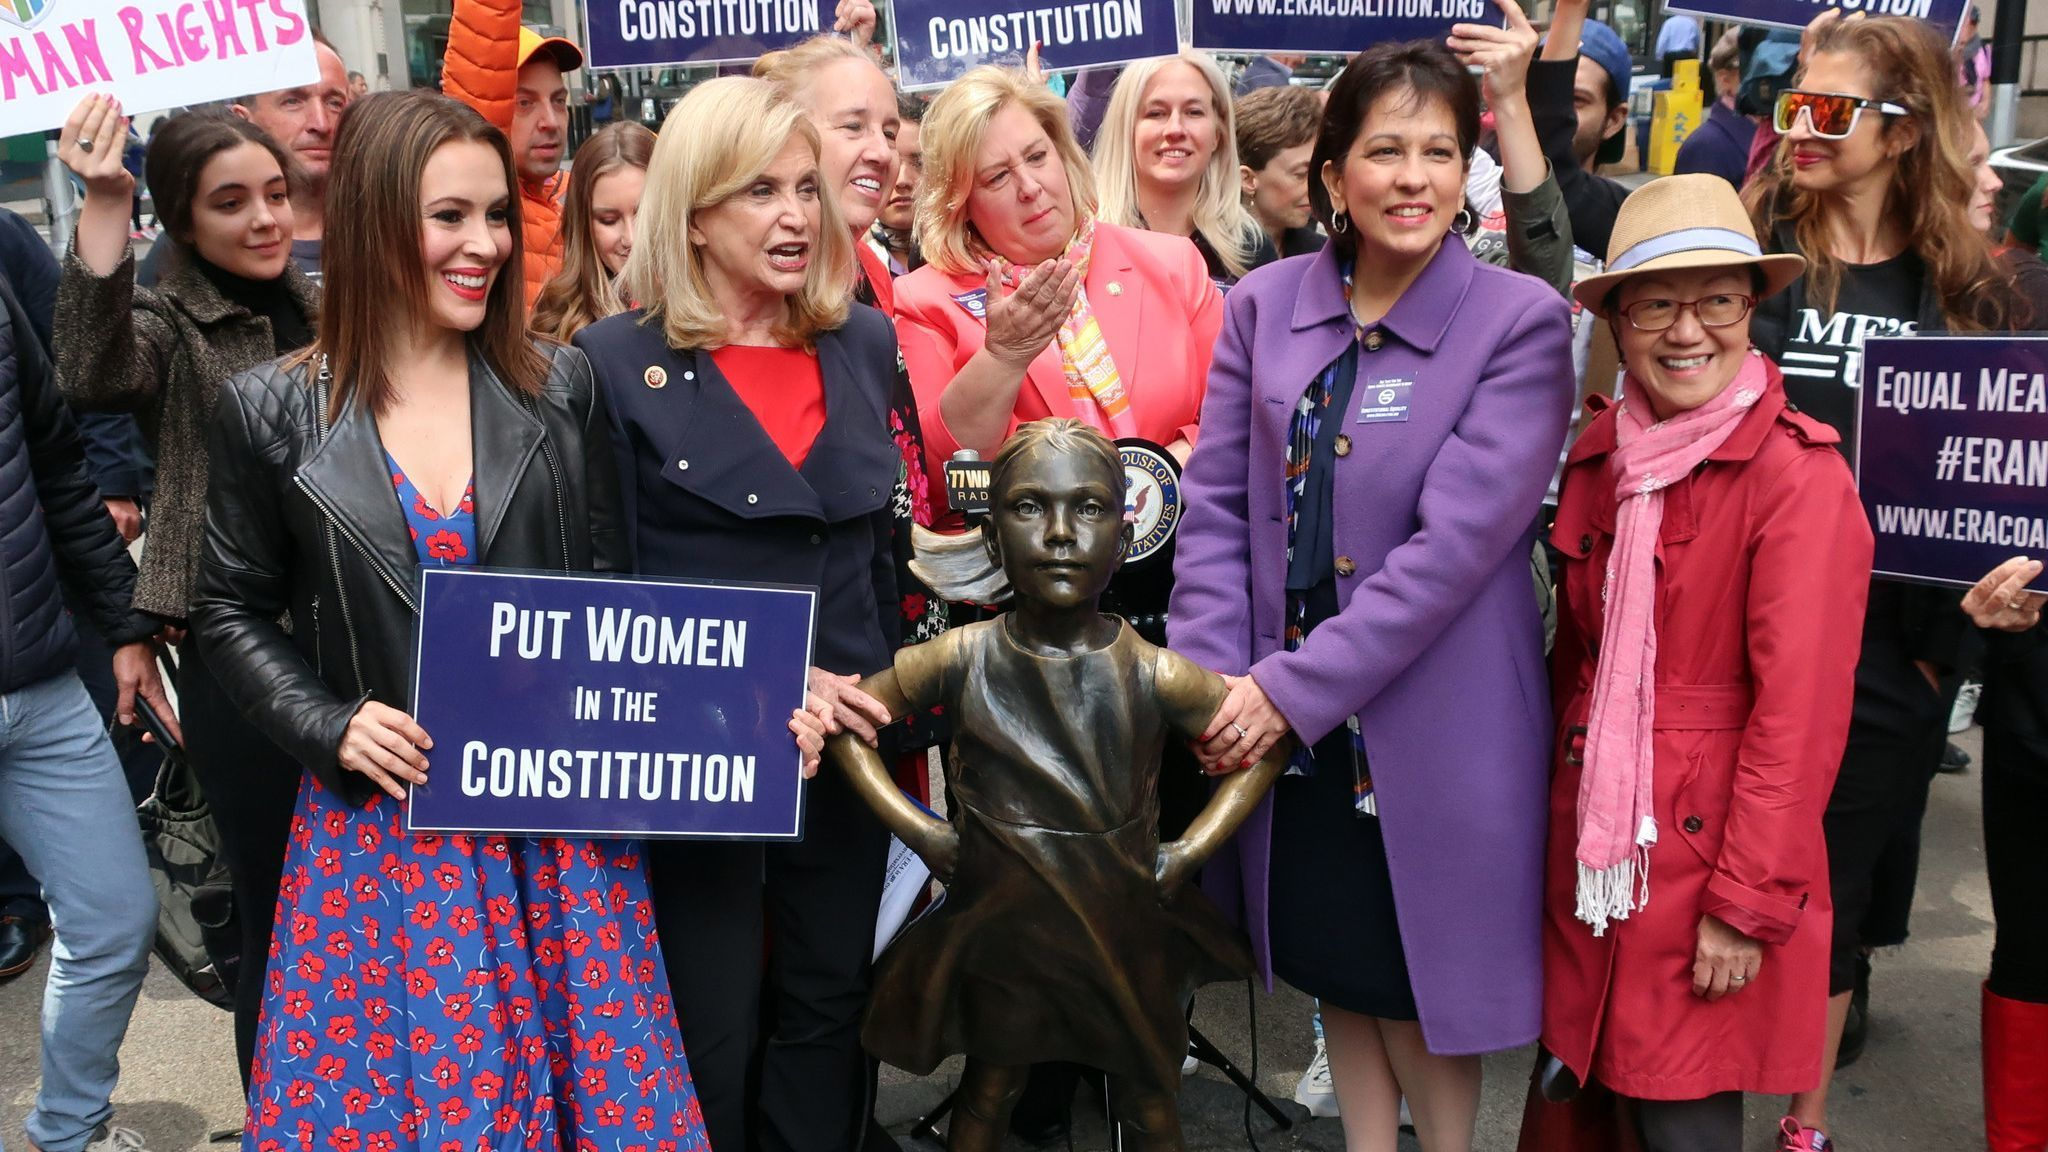 No more waiting. After nearly a century, now is the time to ratify the Equal Rights Amendment